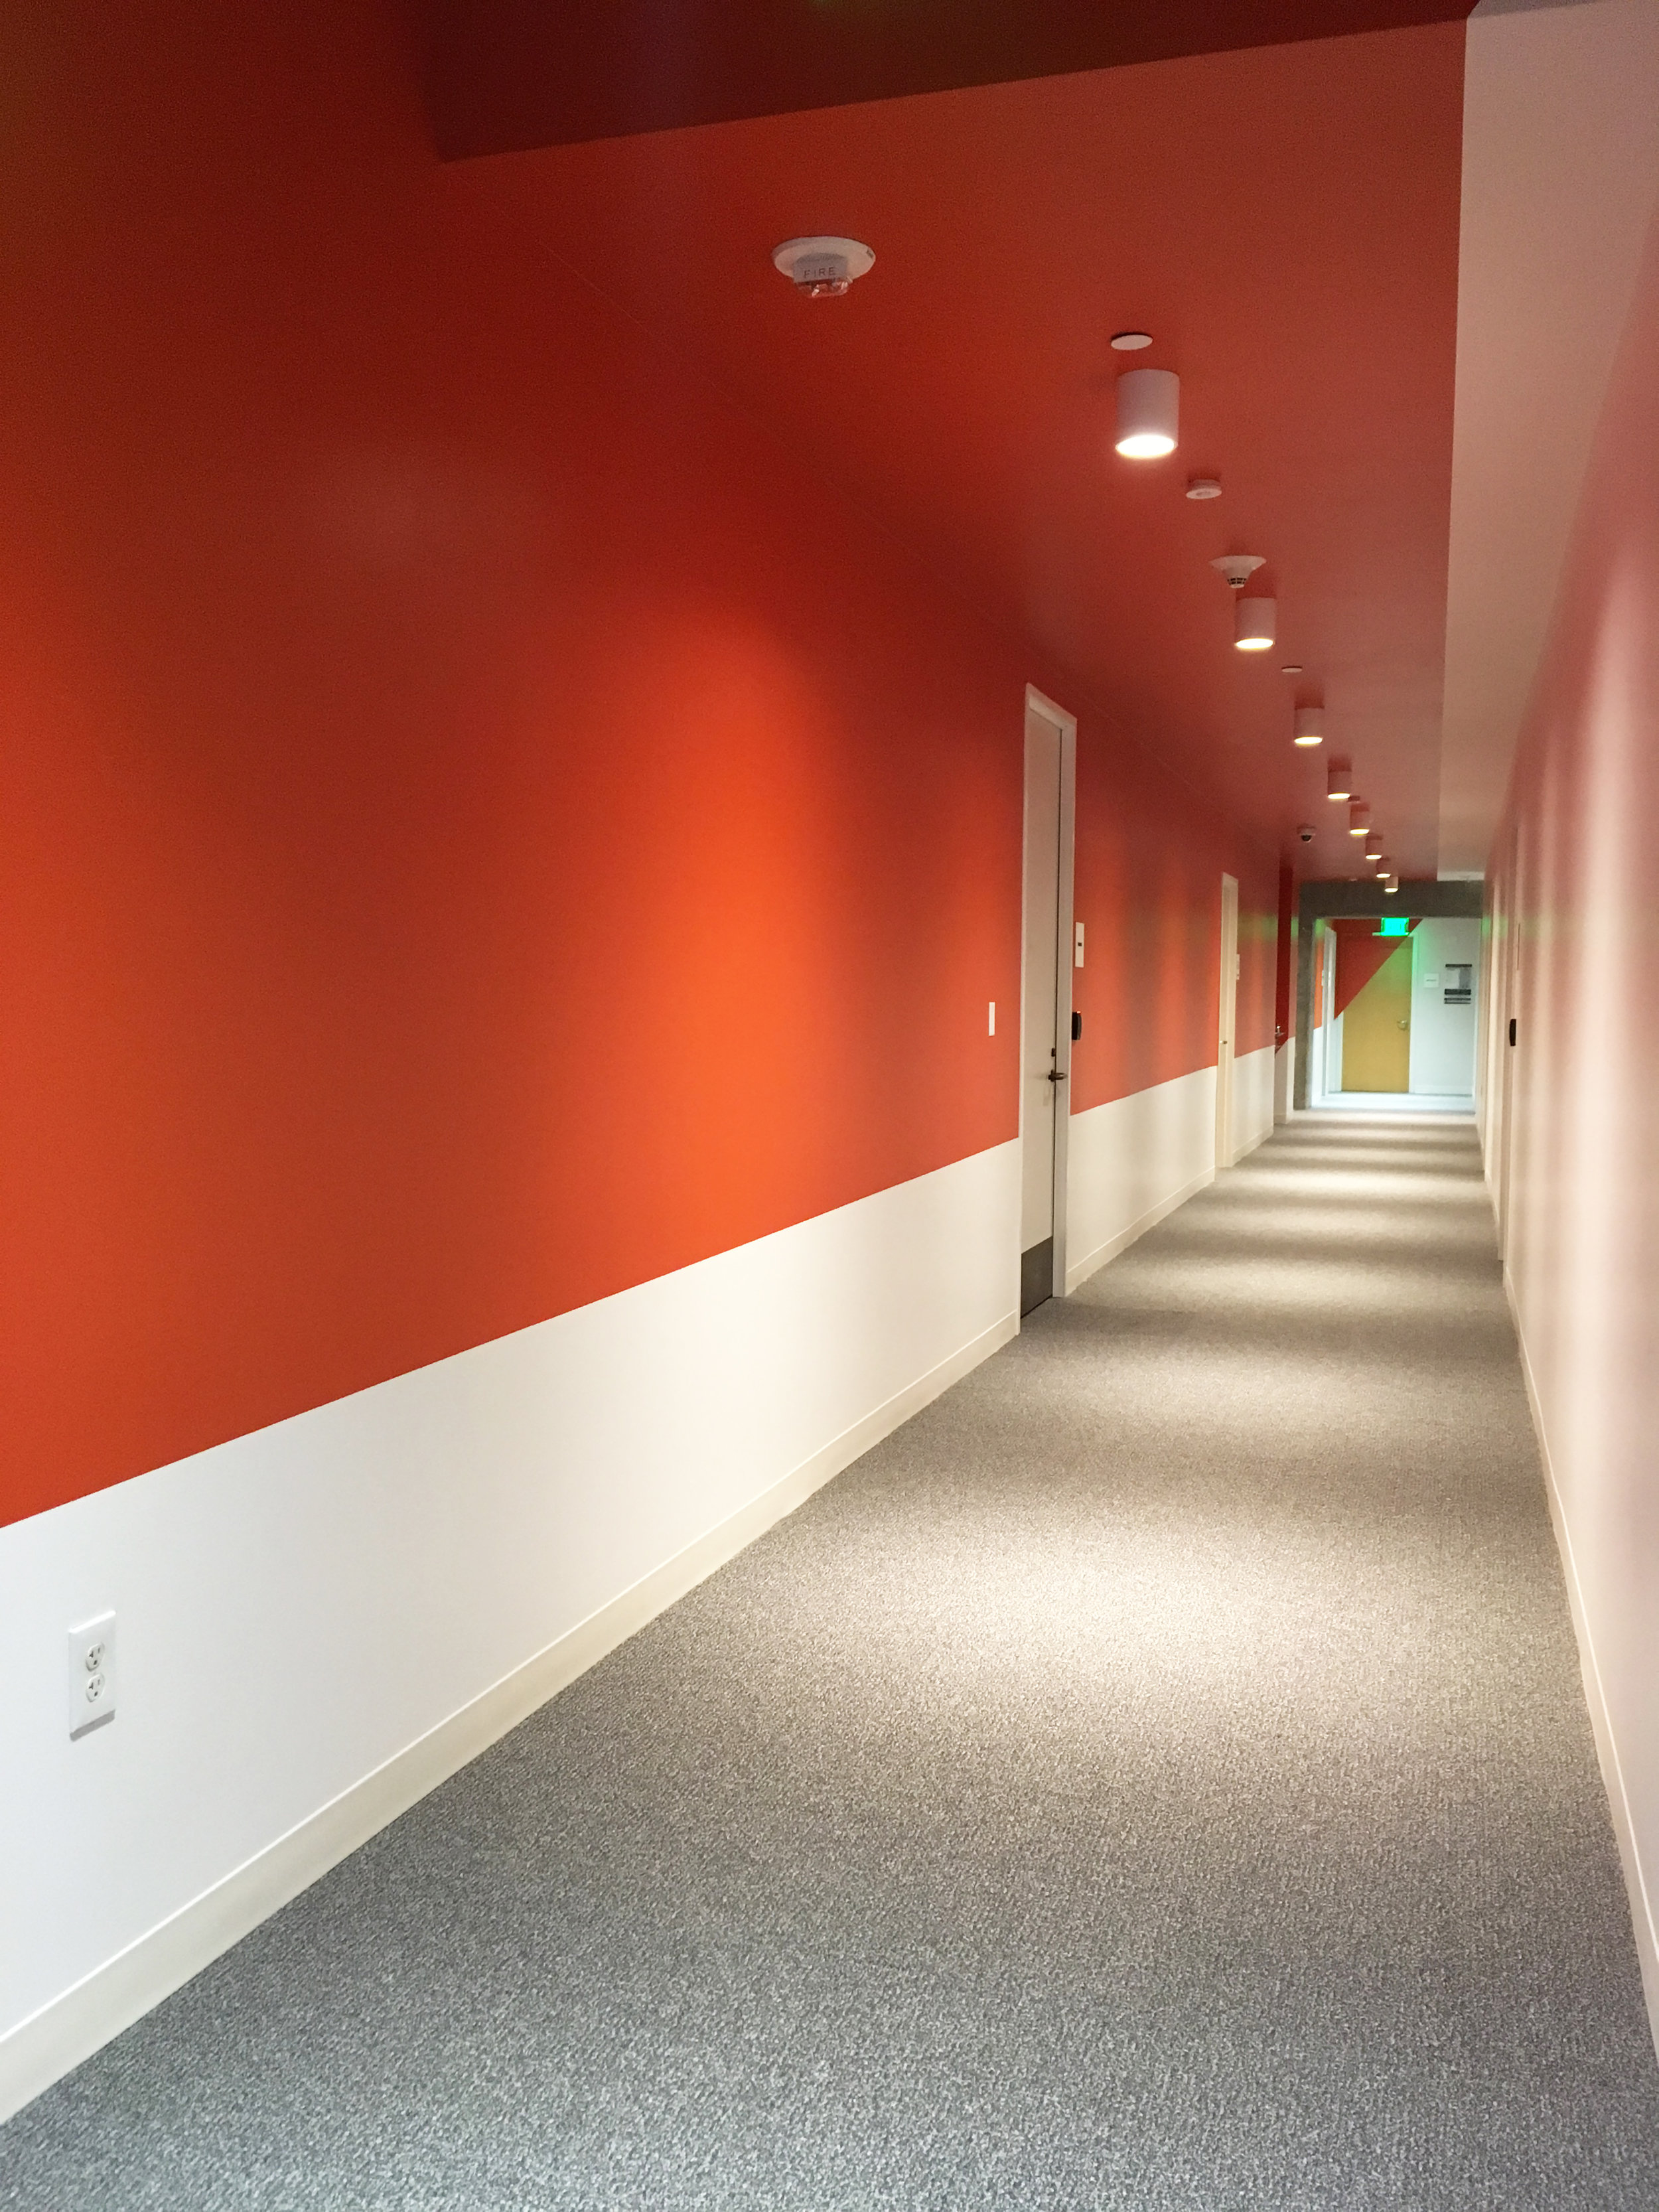 Office-commercial-mural-san-francisco-brex-wall-and-wall-mural-company_004.jpeg